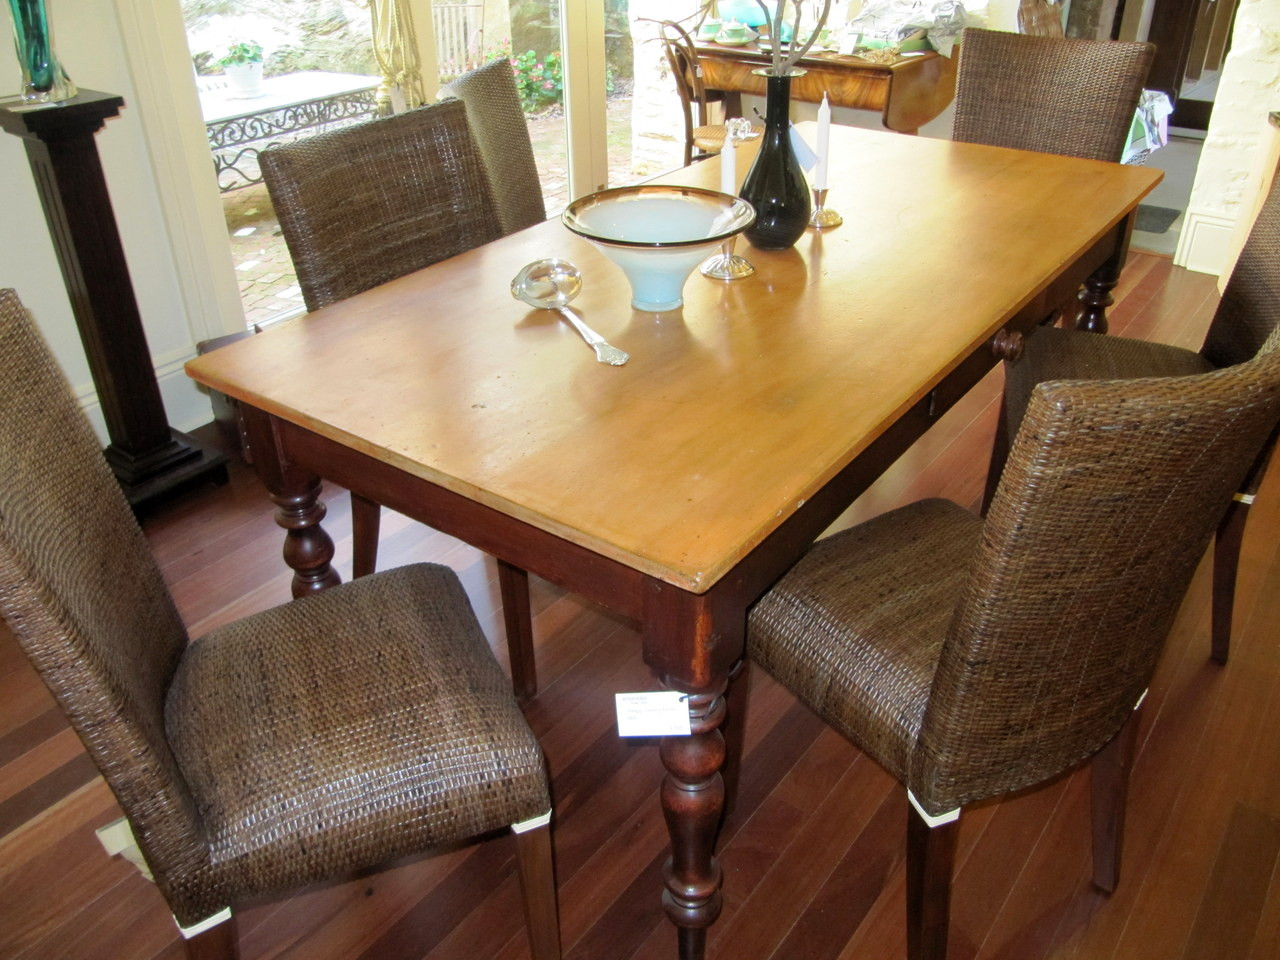 Antique Australian Kauri Pine top turned leg dining table  : IMG183999829140998187212801280 from emprades.com.au size 1280 x 960 jpeg 278kB